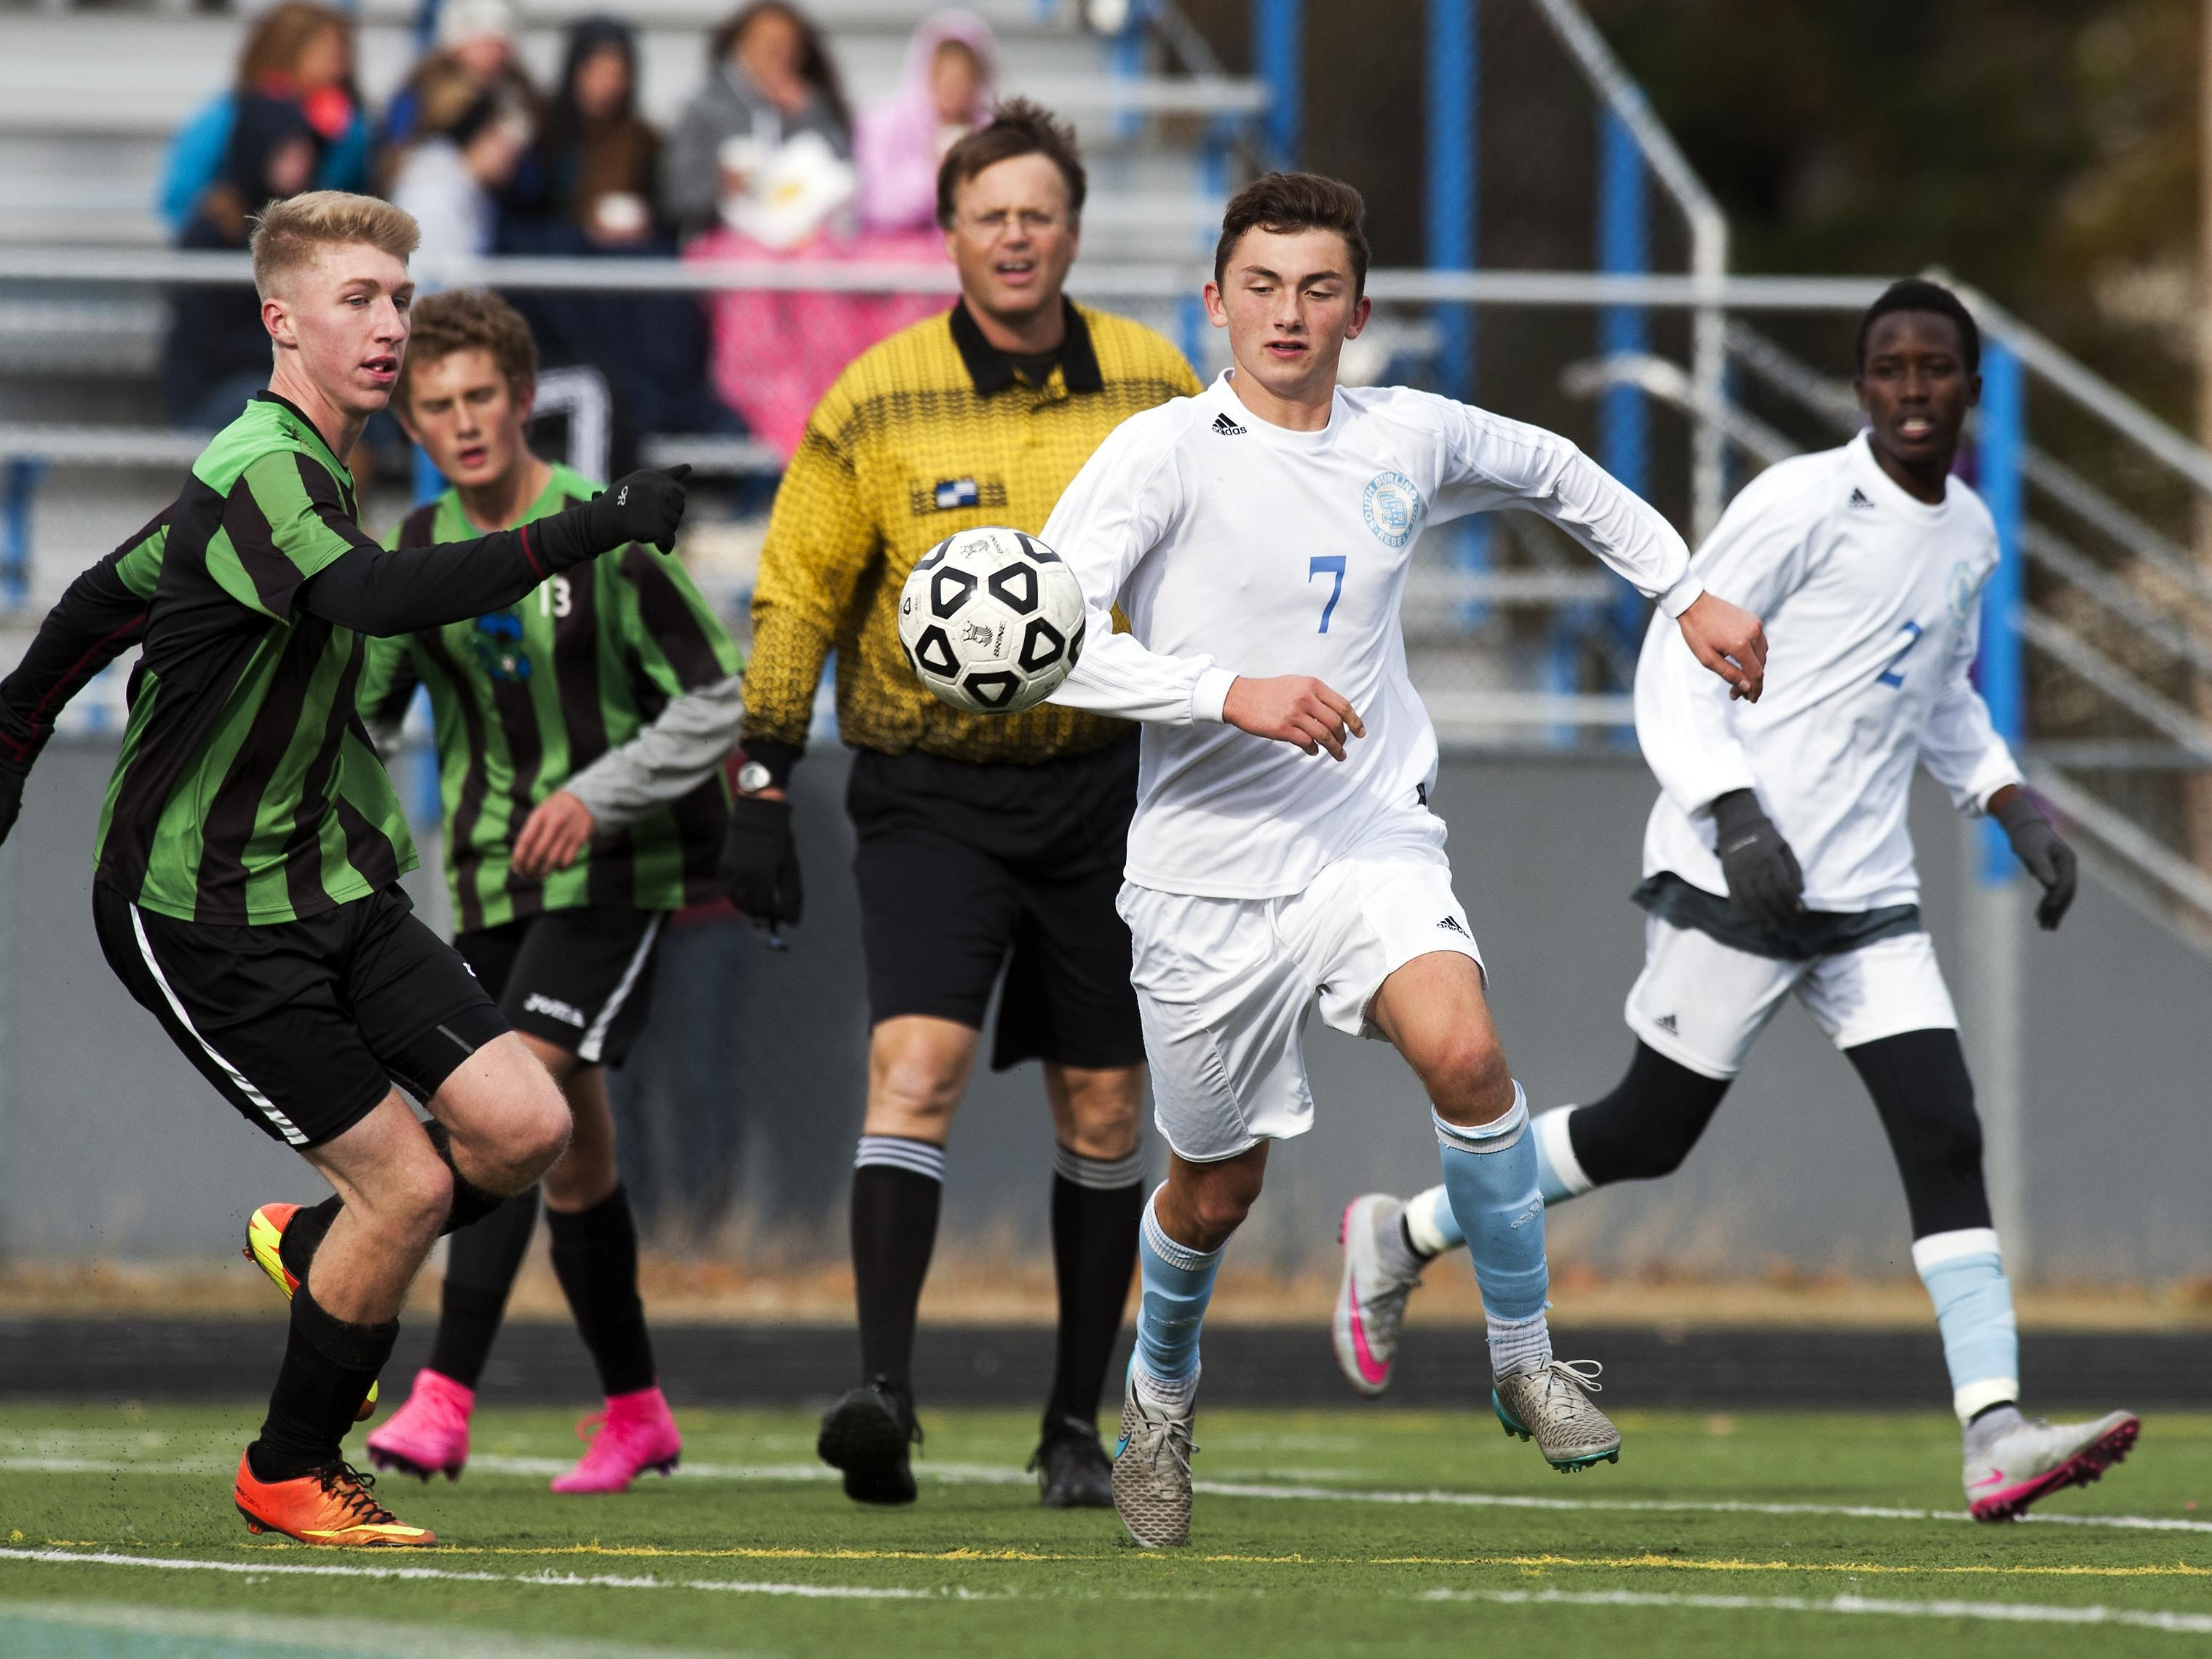 South Burlington's Ben Lambert (7) and Colchester's Amdrew Lynch (9) chase down the ball during a Division I high school boys soccer quarterfinal game at South Burlington on Saturday. The Rebels won 1-0 to advance to Tuesday's semifinals.